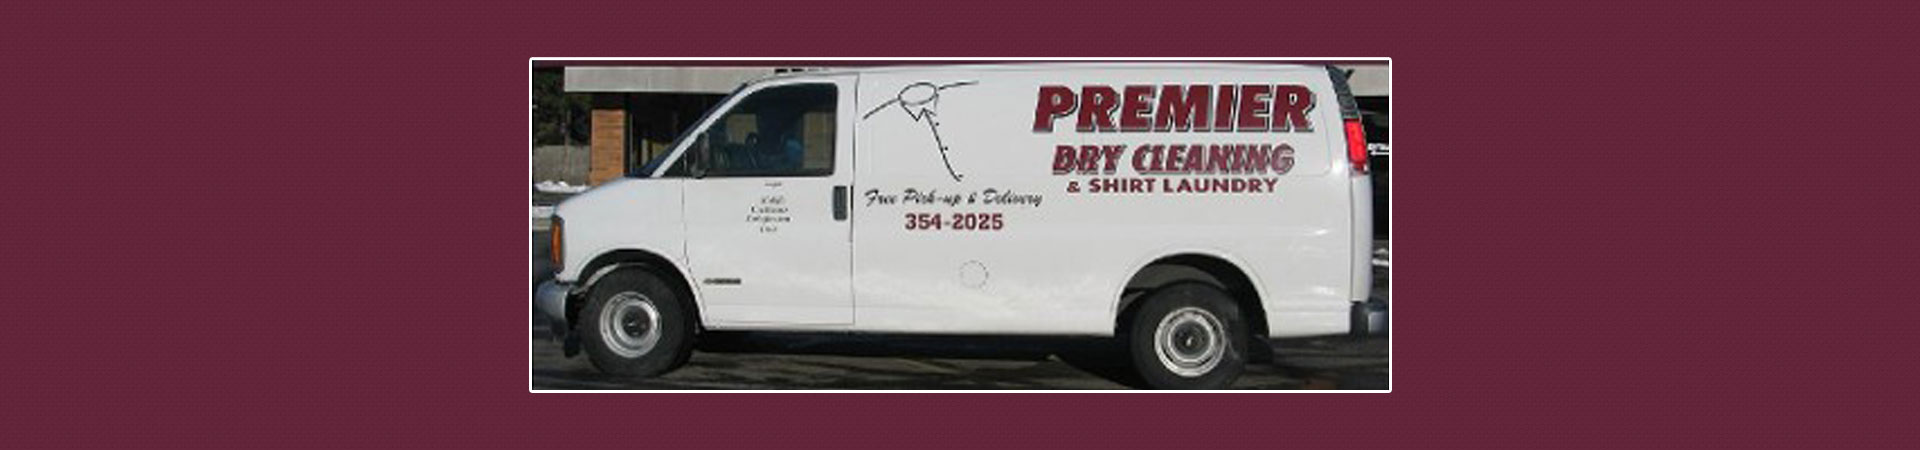 Premier Dry Cleaning Van